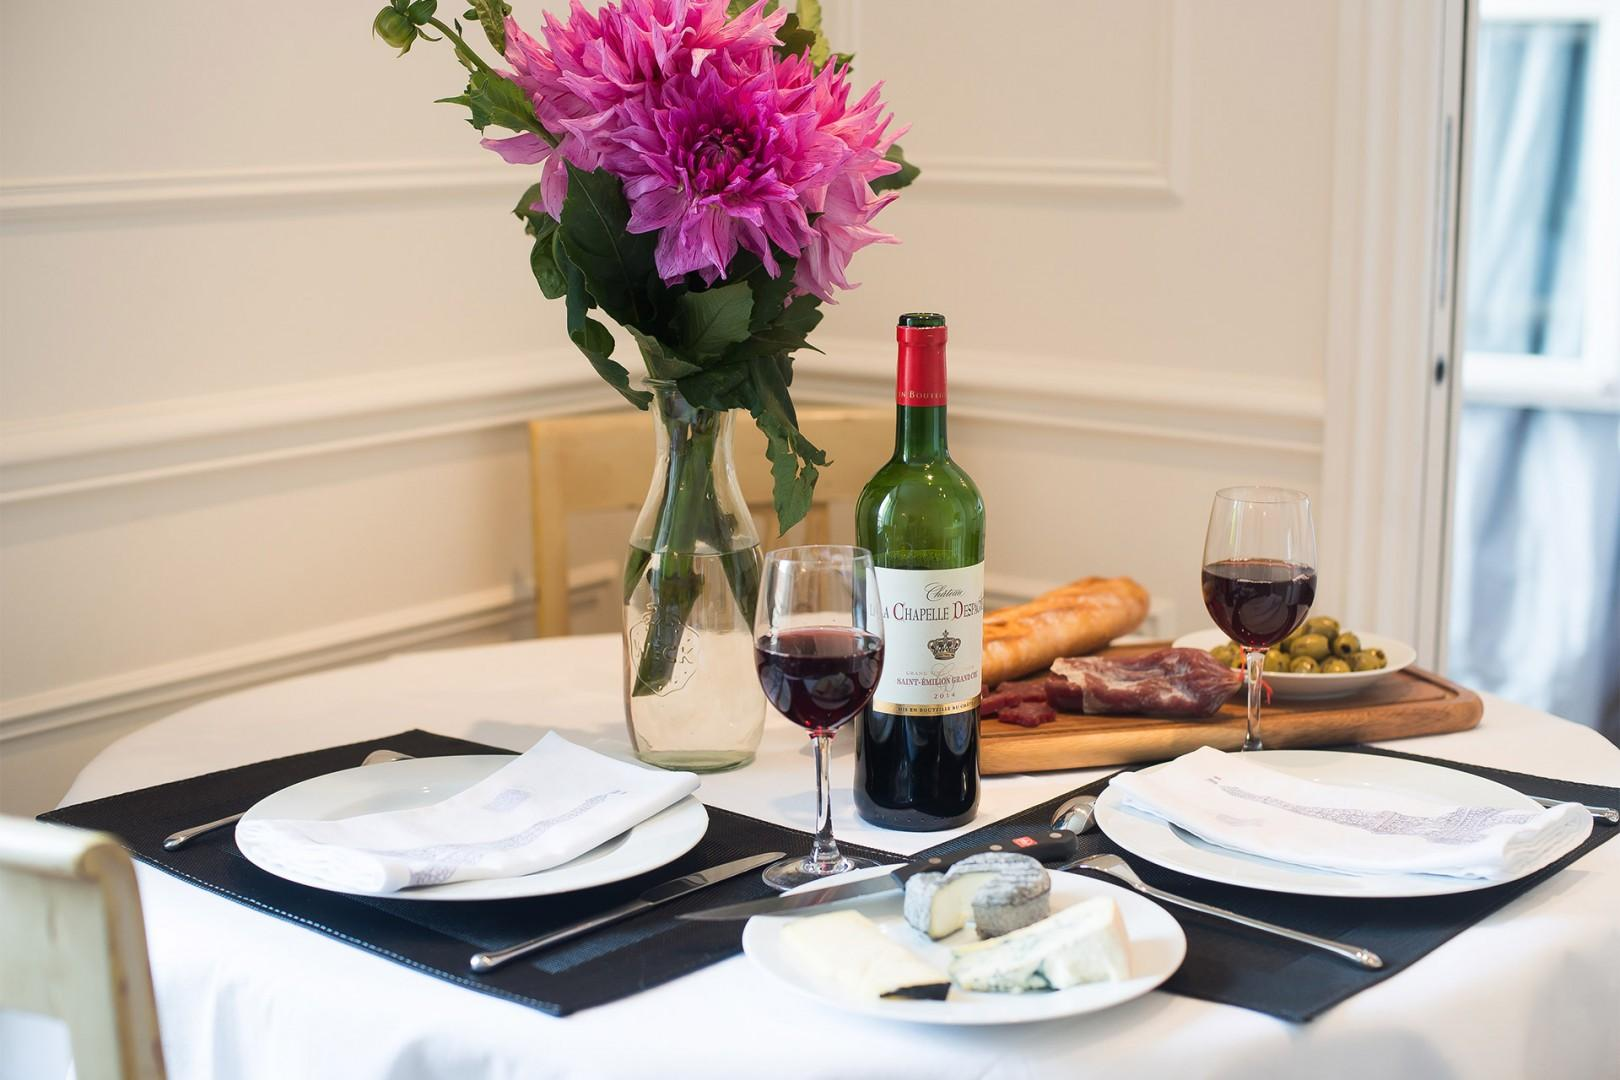 Treat your special someone to a romantic French dinner at home.